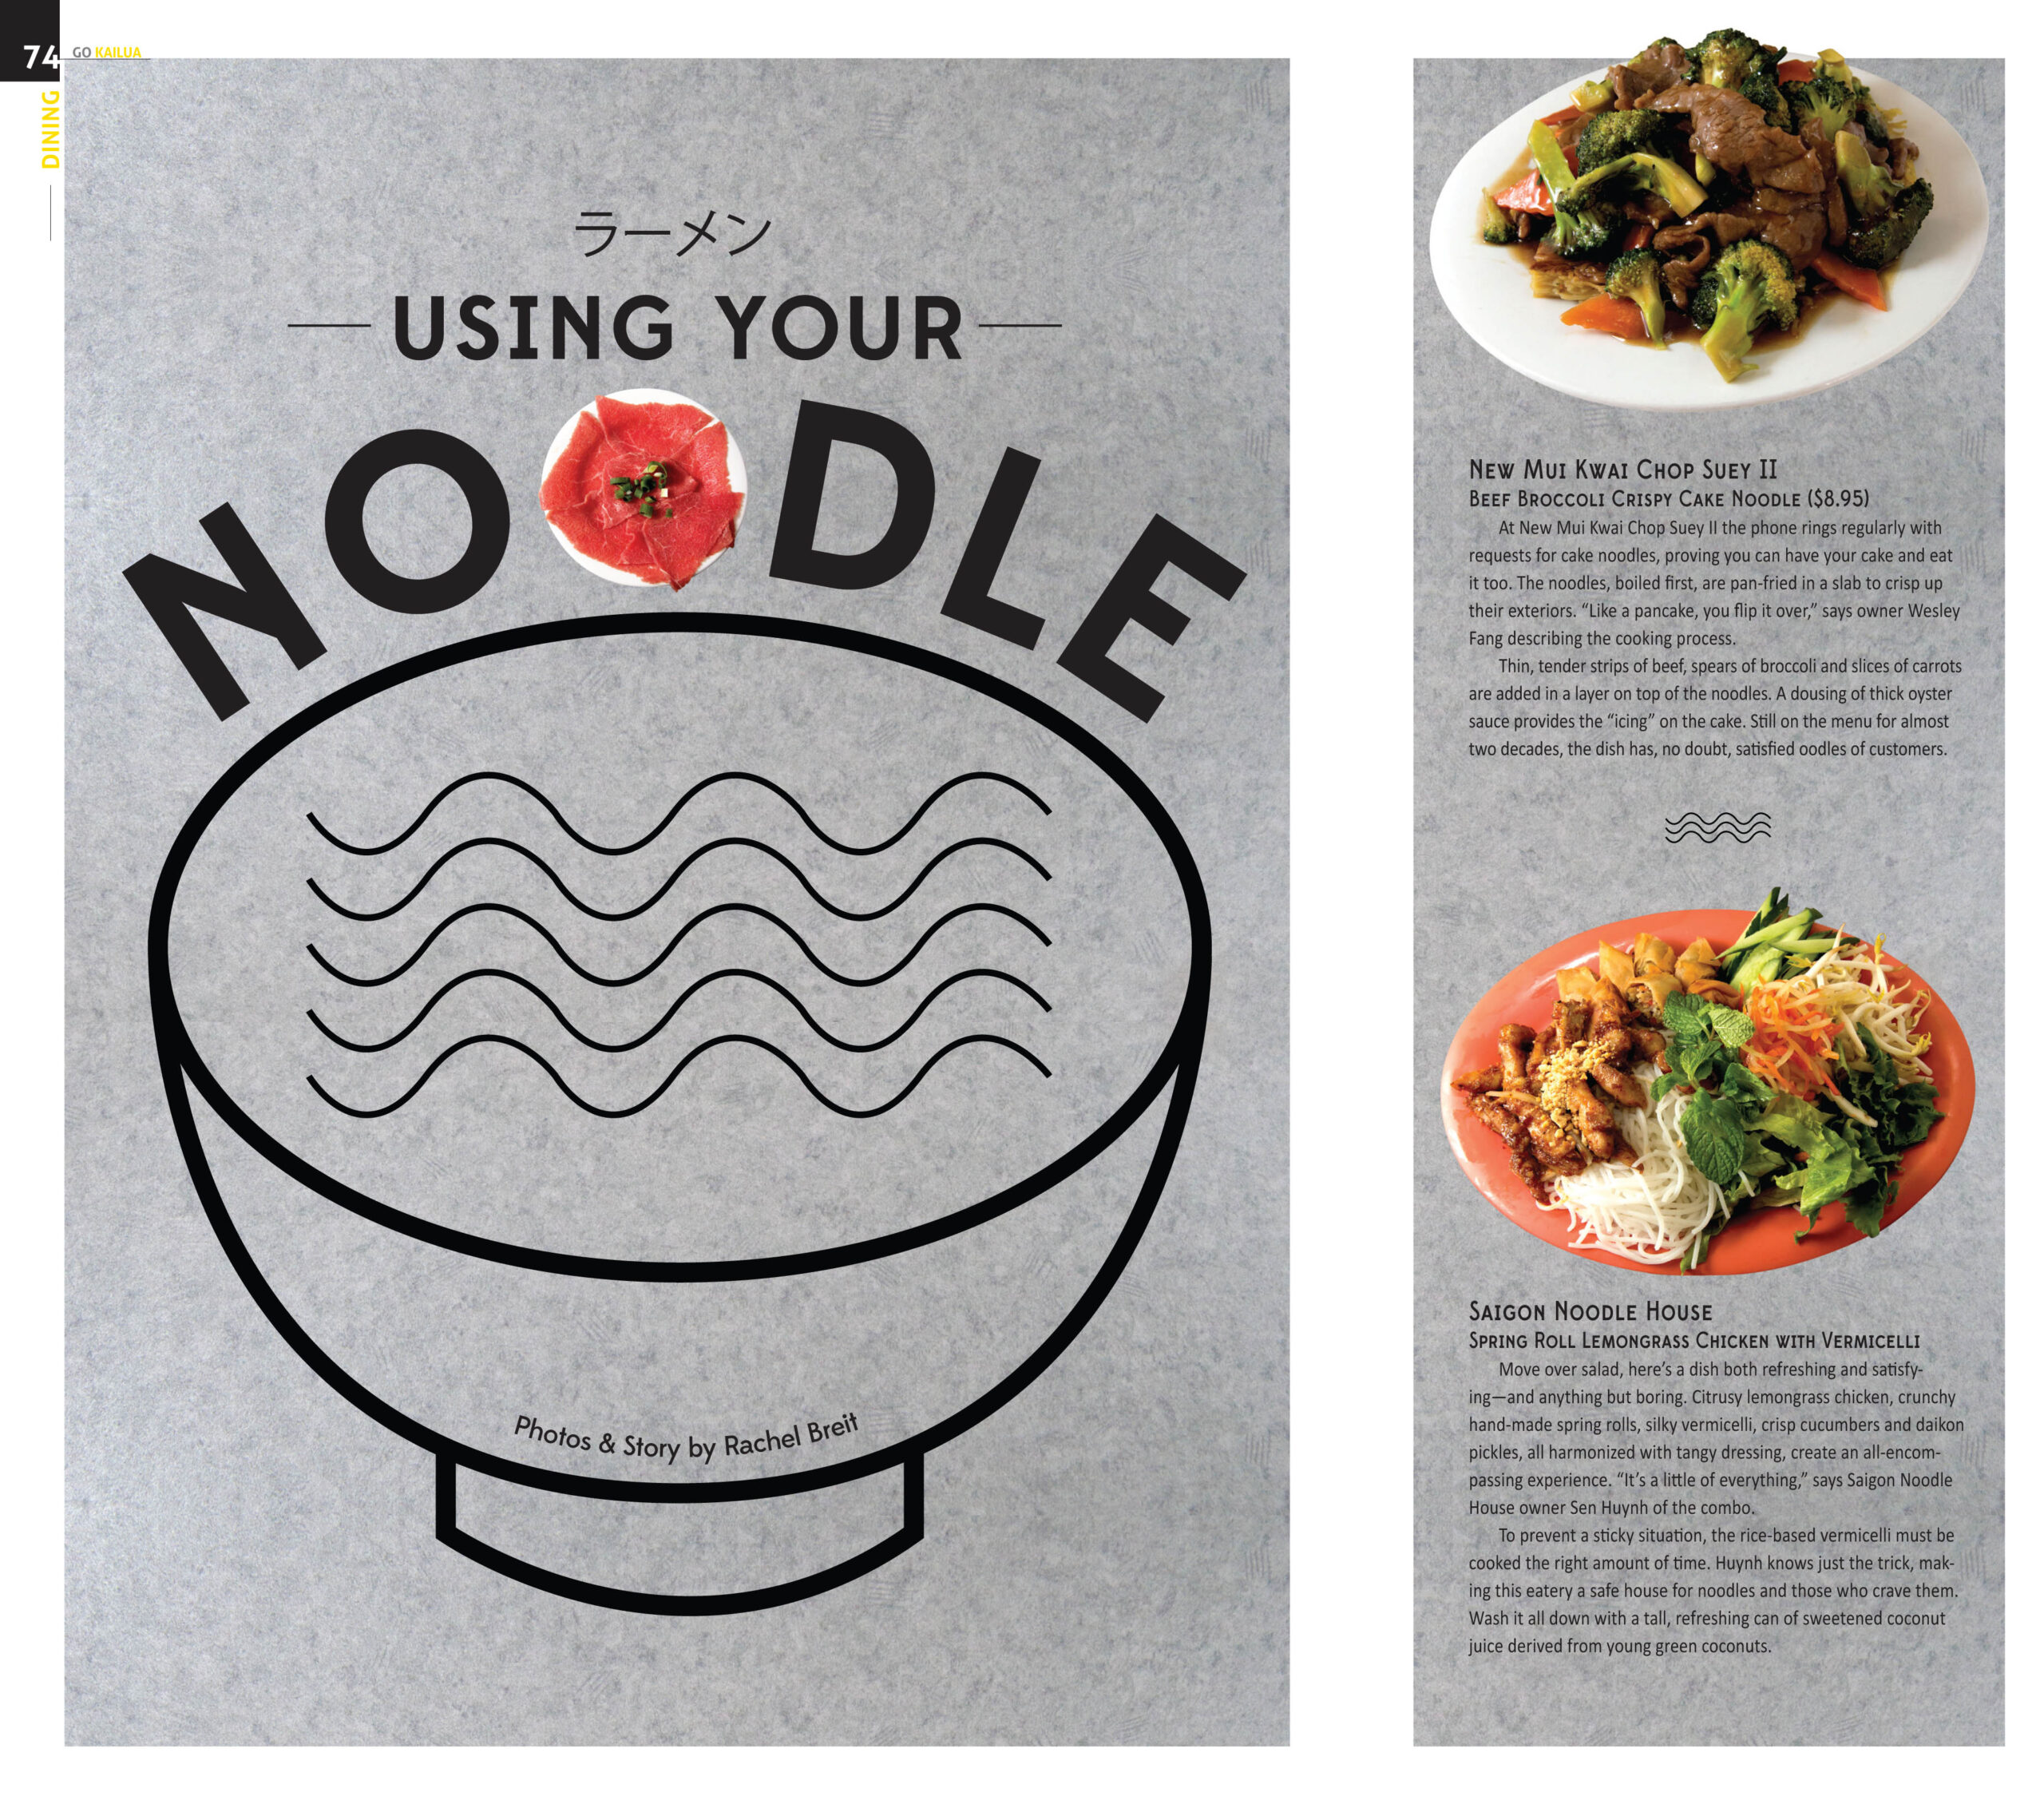 Using-Your-Noodle-scaled.jpg